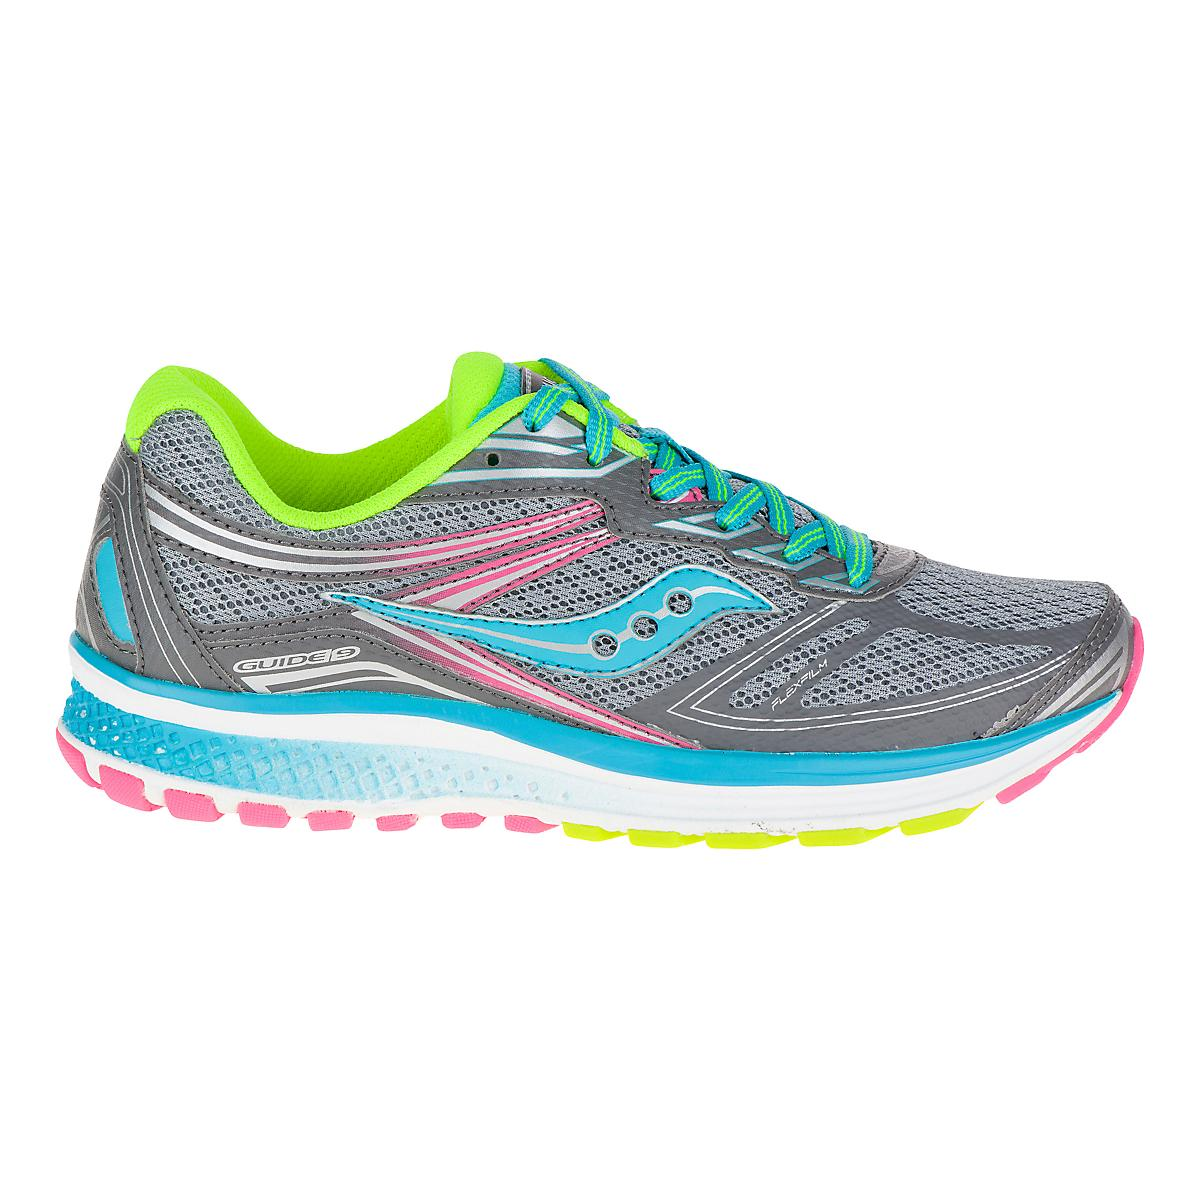 competitive price 2f4f1 40d14 Kids Saucony Guide 9 Running Shoe at Road Runner Sports